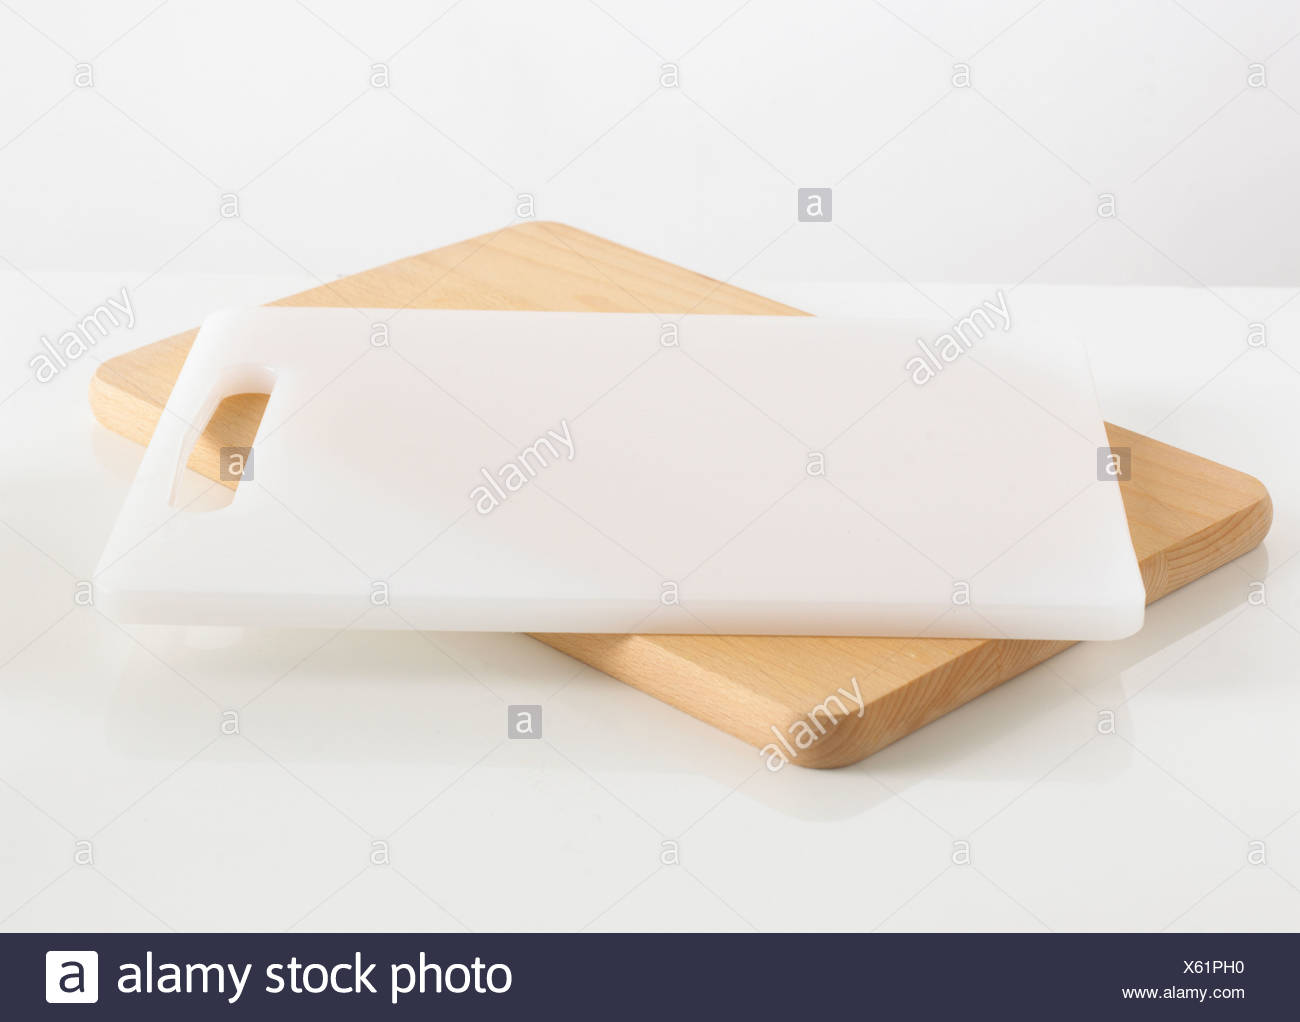 Wooden and white chopping board against white background - Stock Image